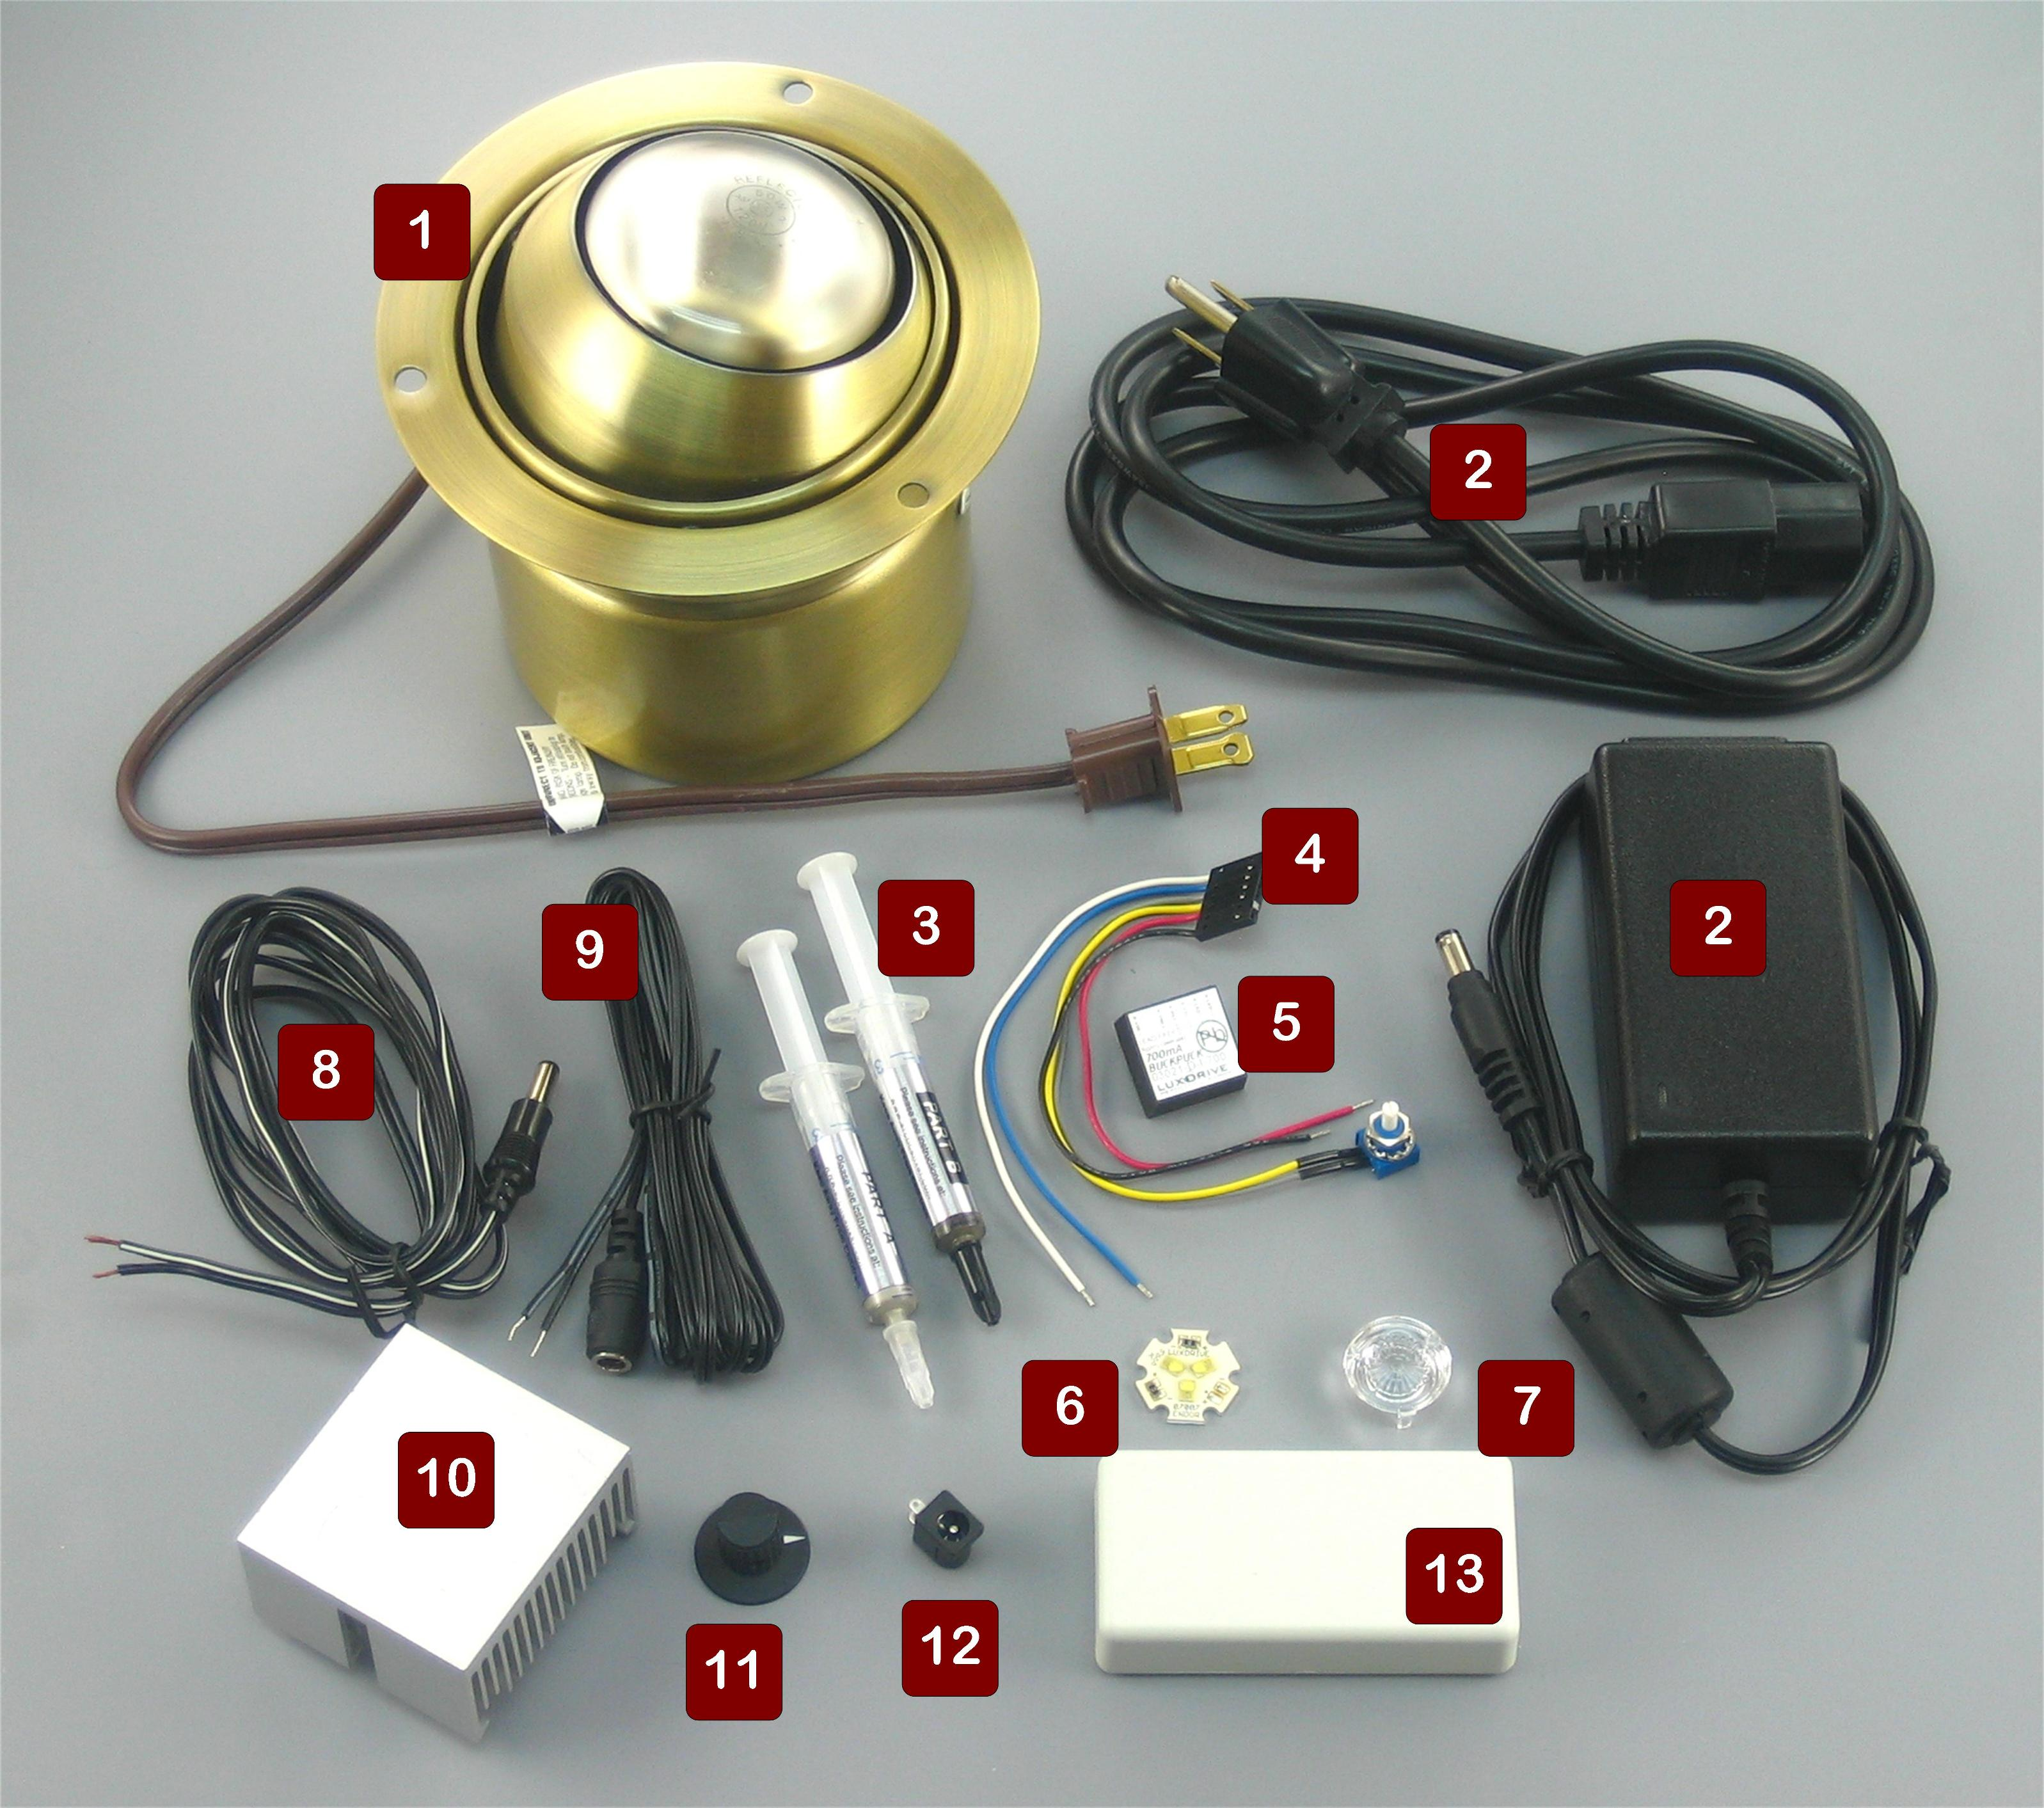 Led Light Fixture Parts